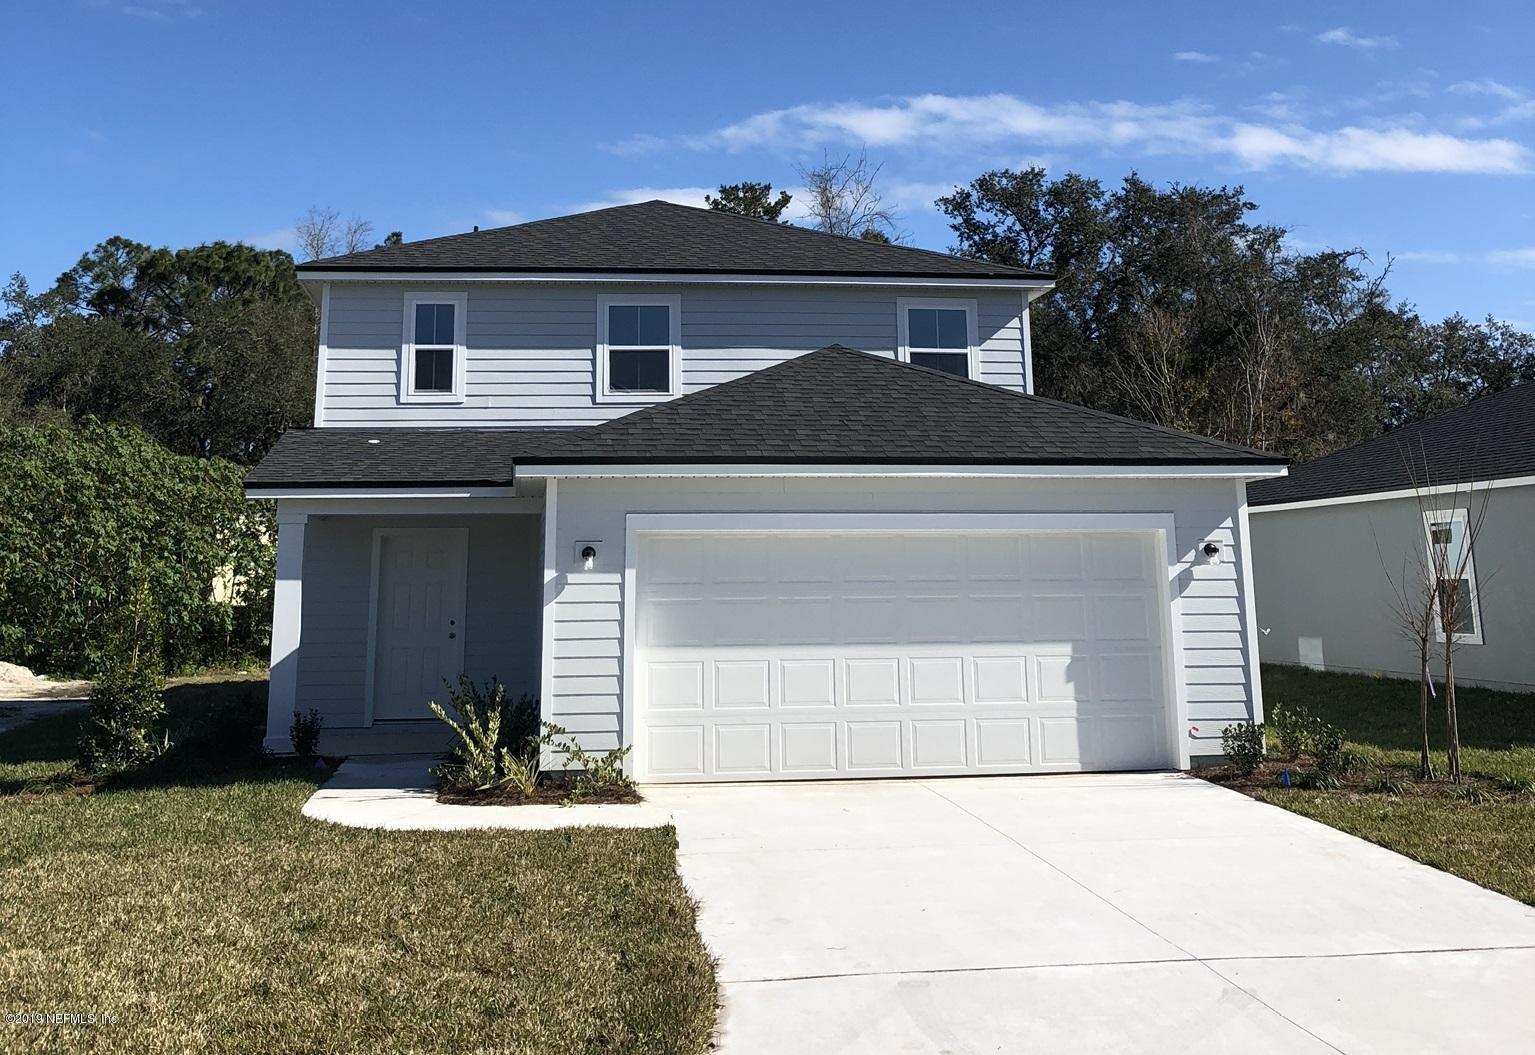 312 SAWMILL LANDING, ST AUGUSTINE, FLORIDA 32086, 3 Bedrooms Bedrooms, ,2 BathroomsBathrooms,Residential - single family,For sale,SAWMILL LANDING,938870